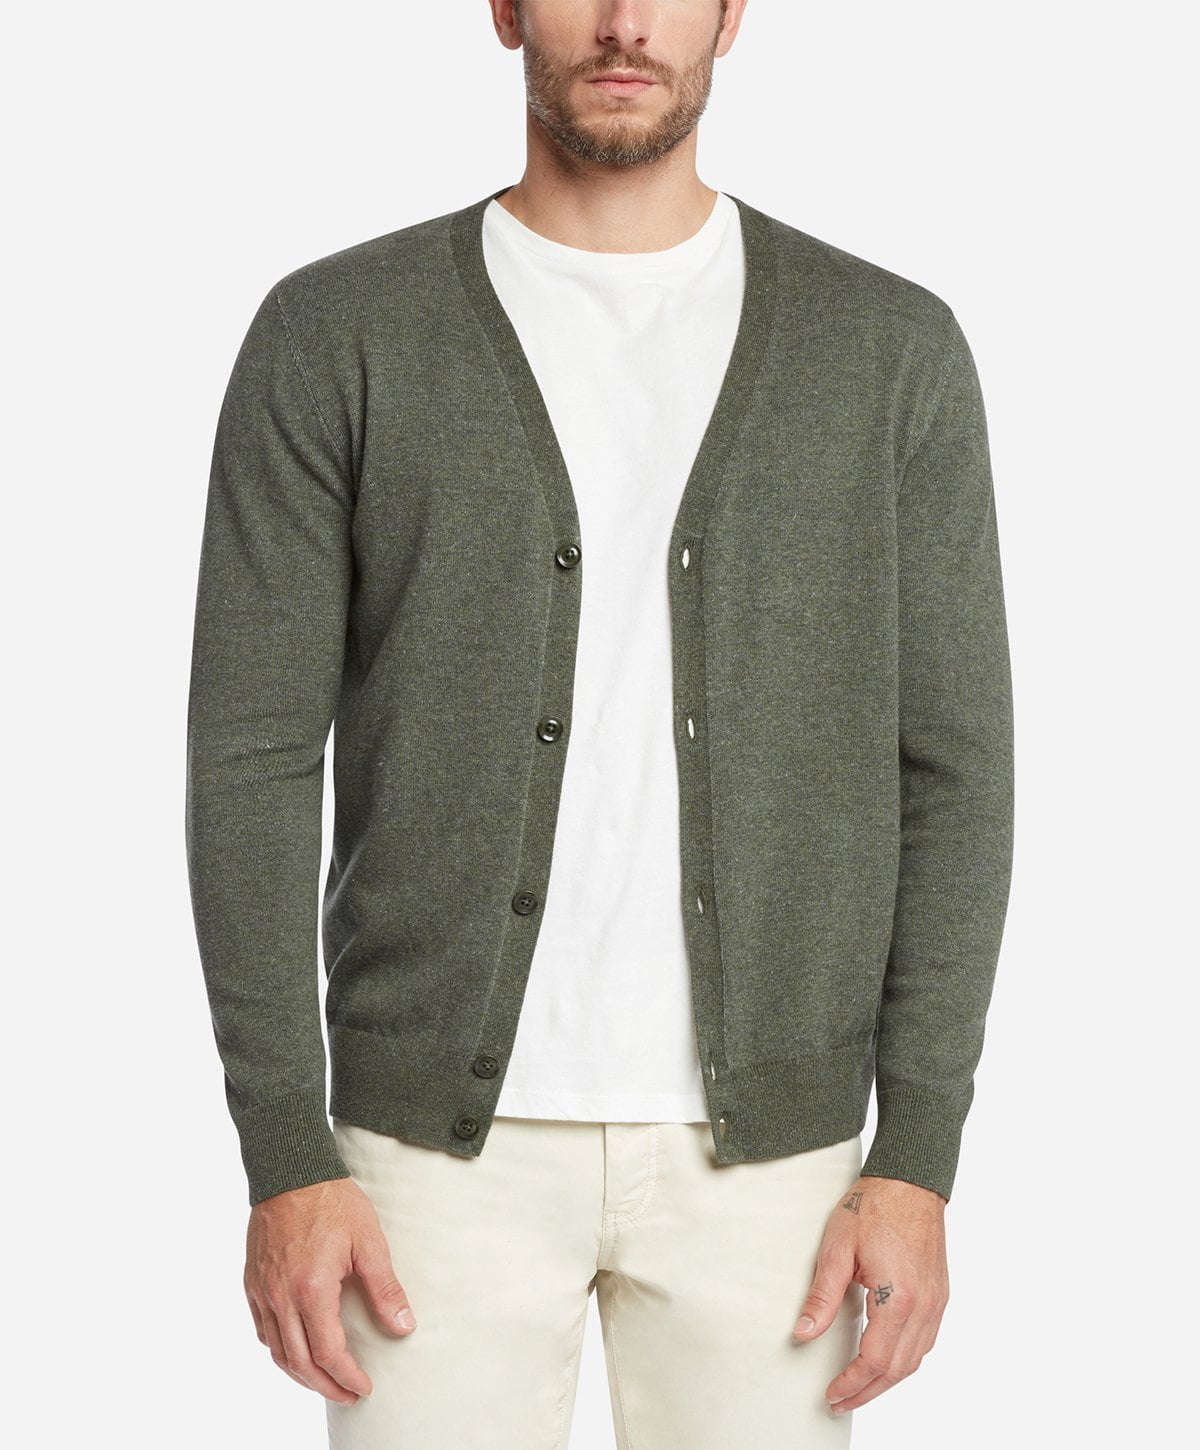 San Juan Cardigan - Heather Olive